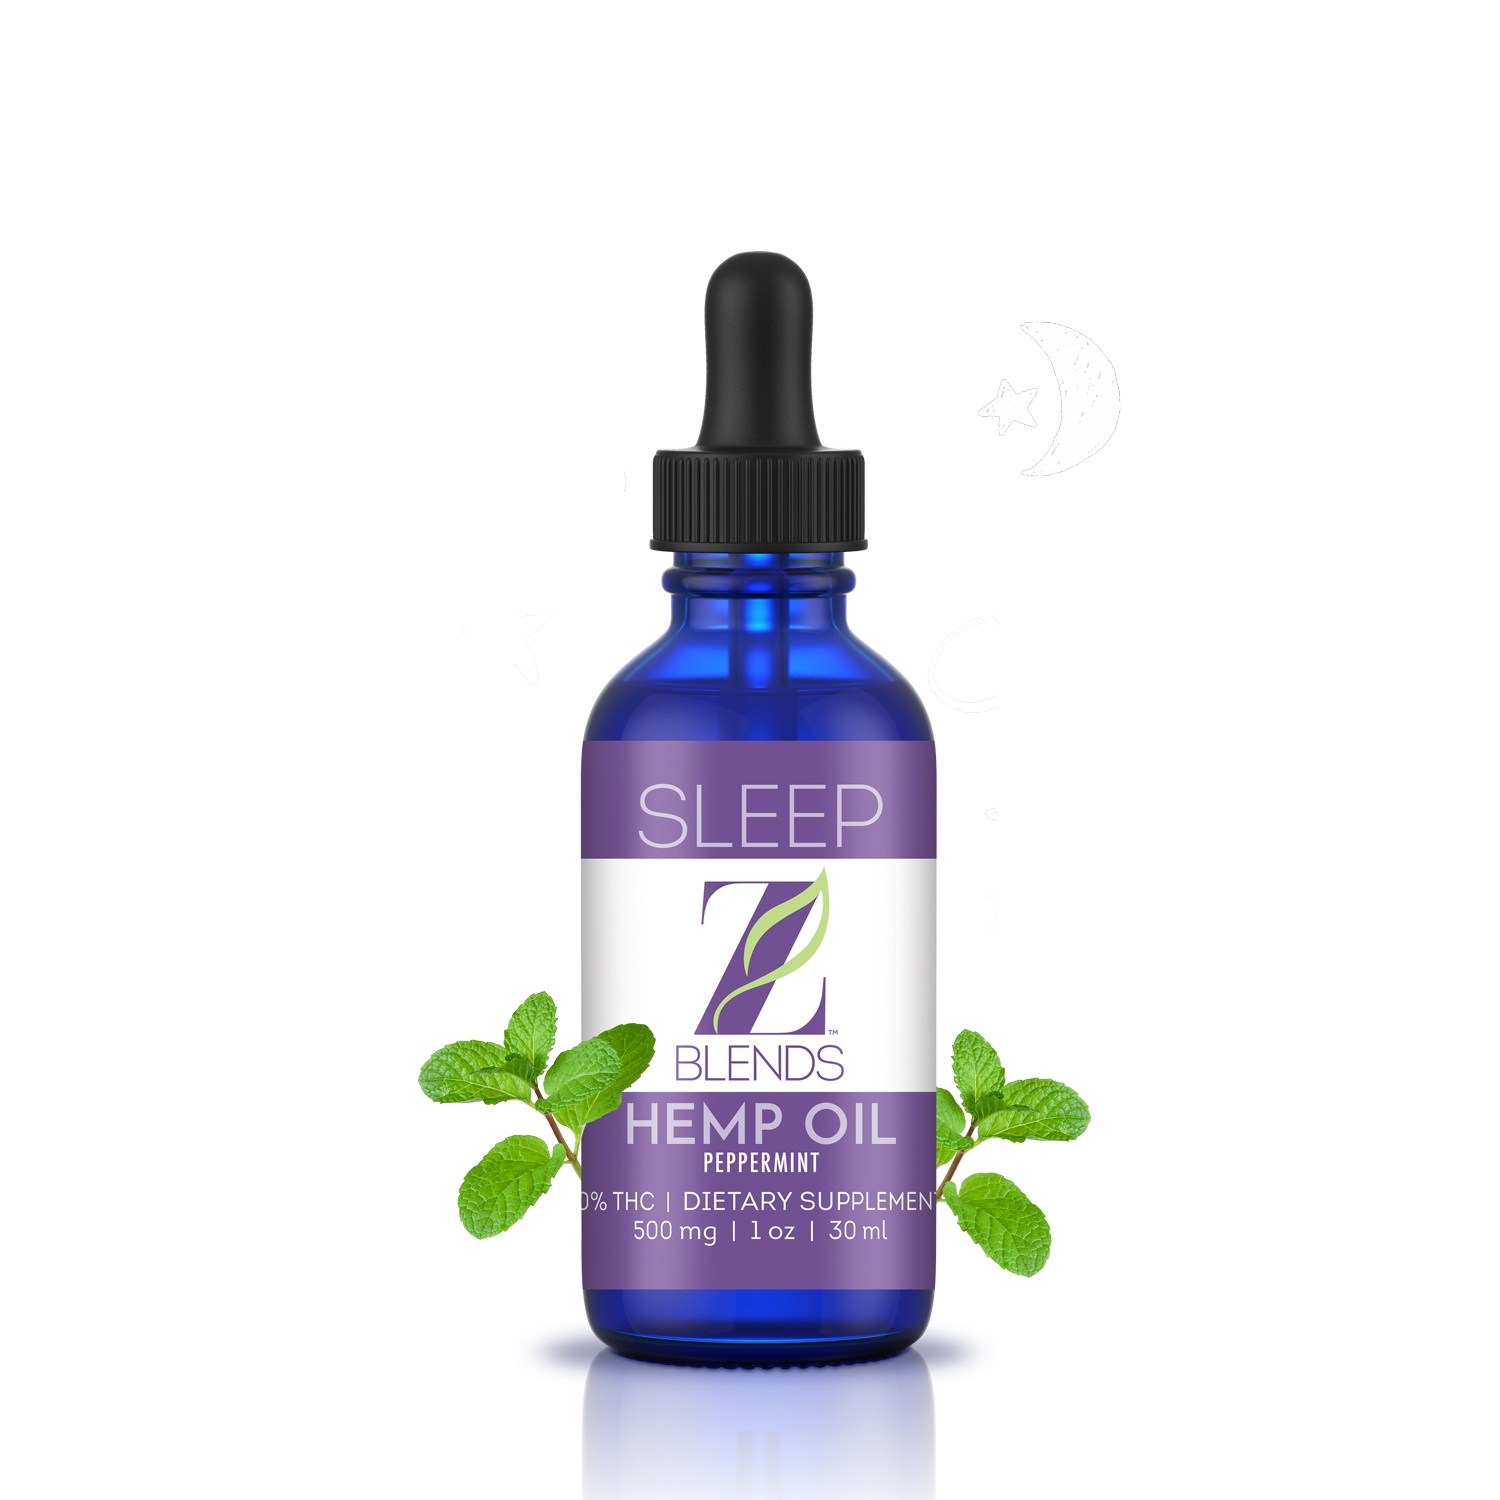 ZBLENDS_MARKETING_PRODUCTS_HEMP_SLEEP_11646.jpg